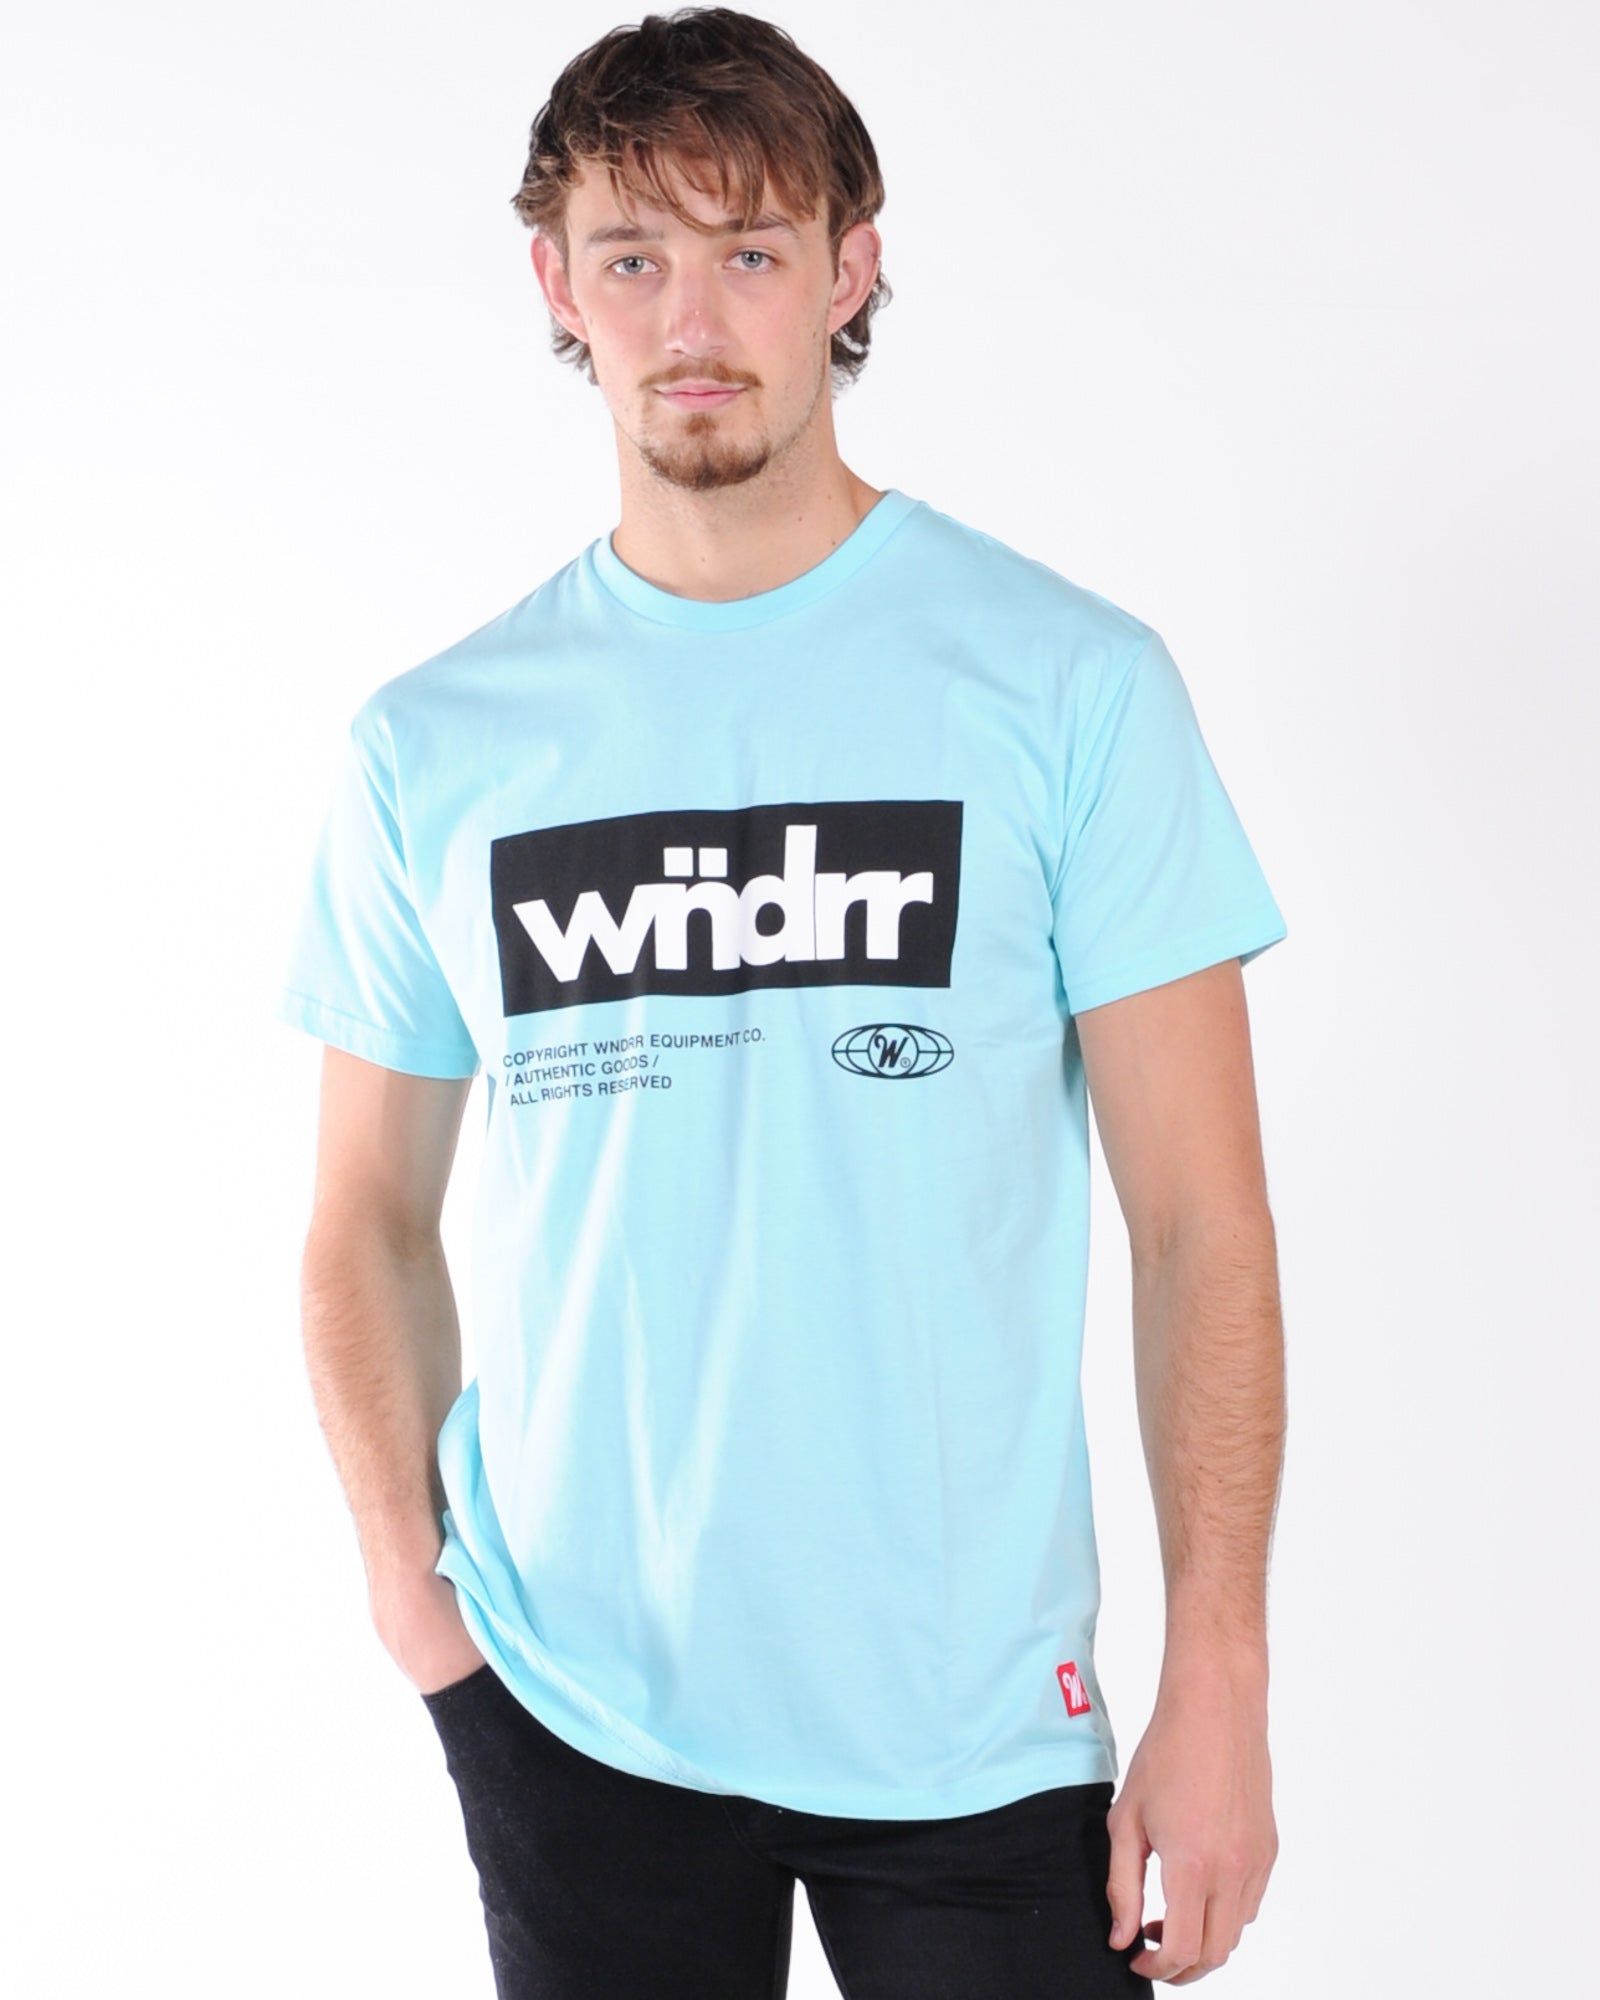 Wndrr Manifest Custom Fit Tee - Light Blue